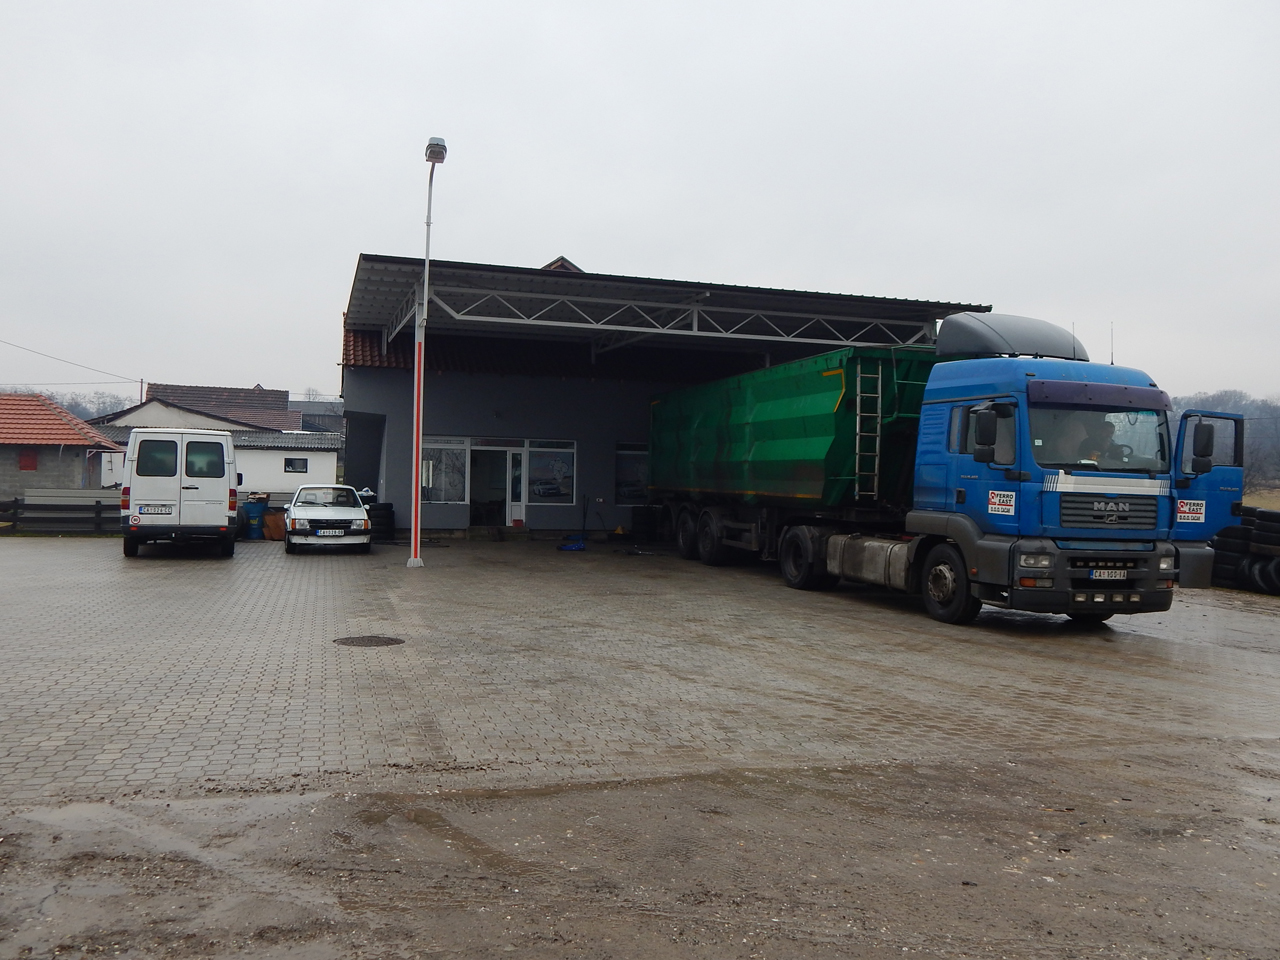 TIRE REPAIR SERVICE LUKIC 002 Car Wash Cacak - Photo 2